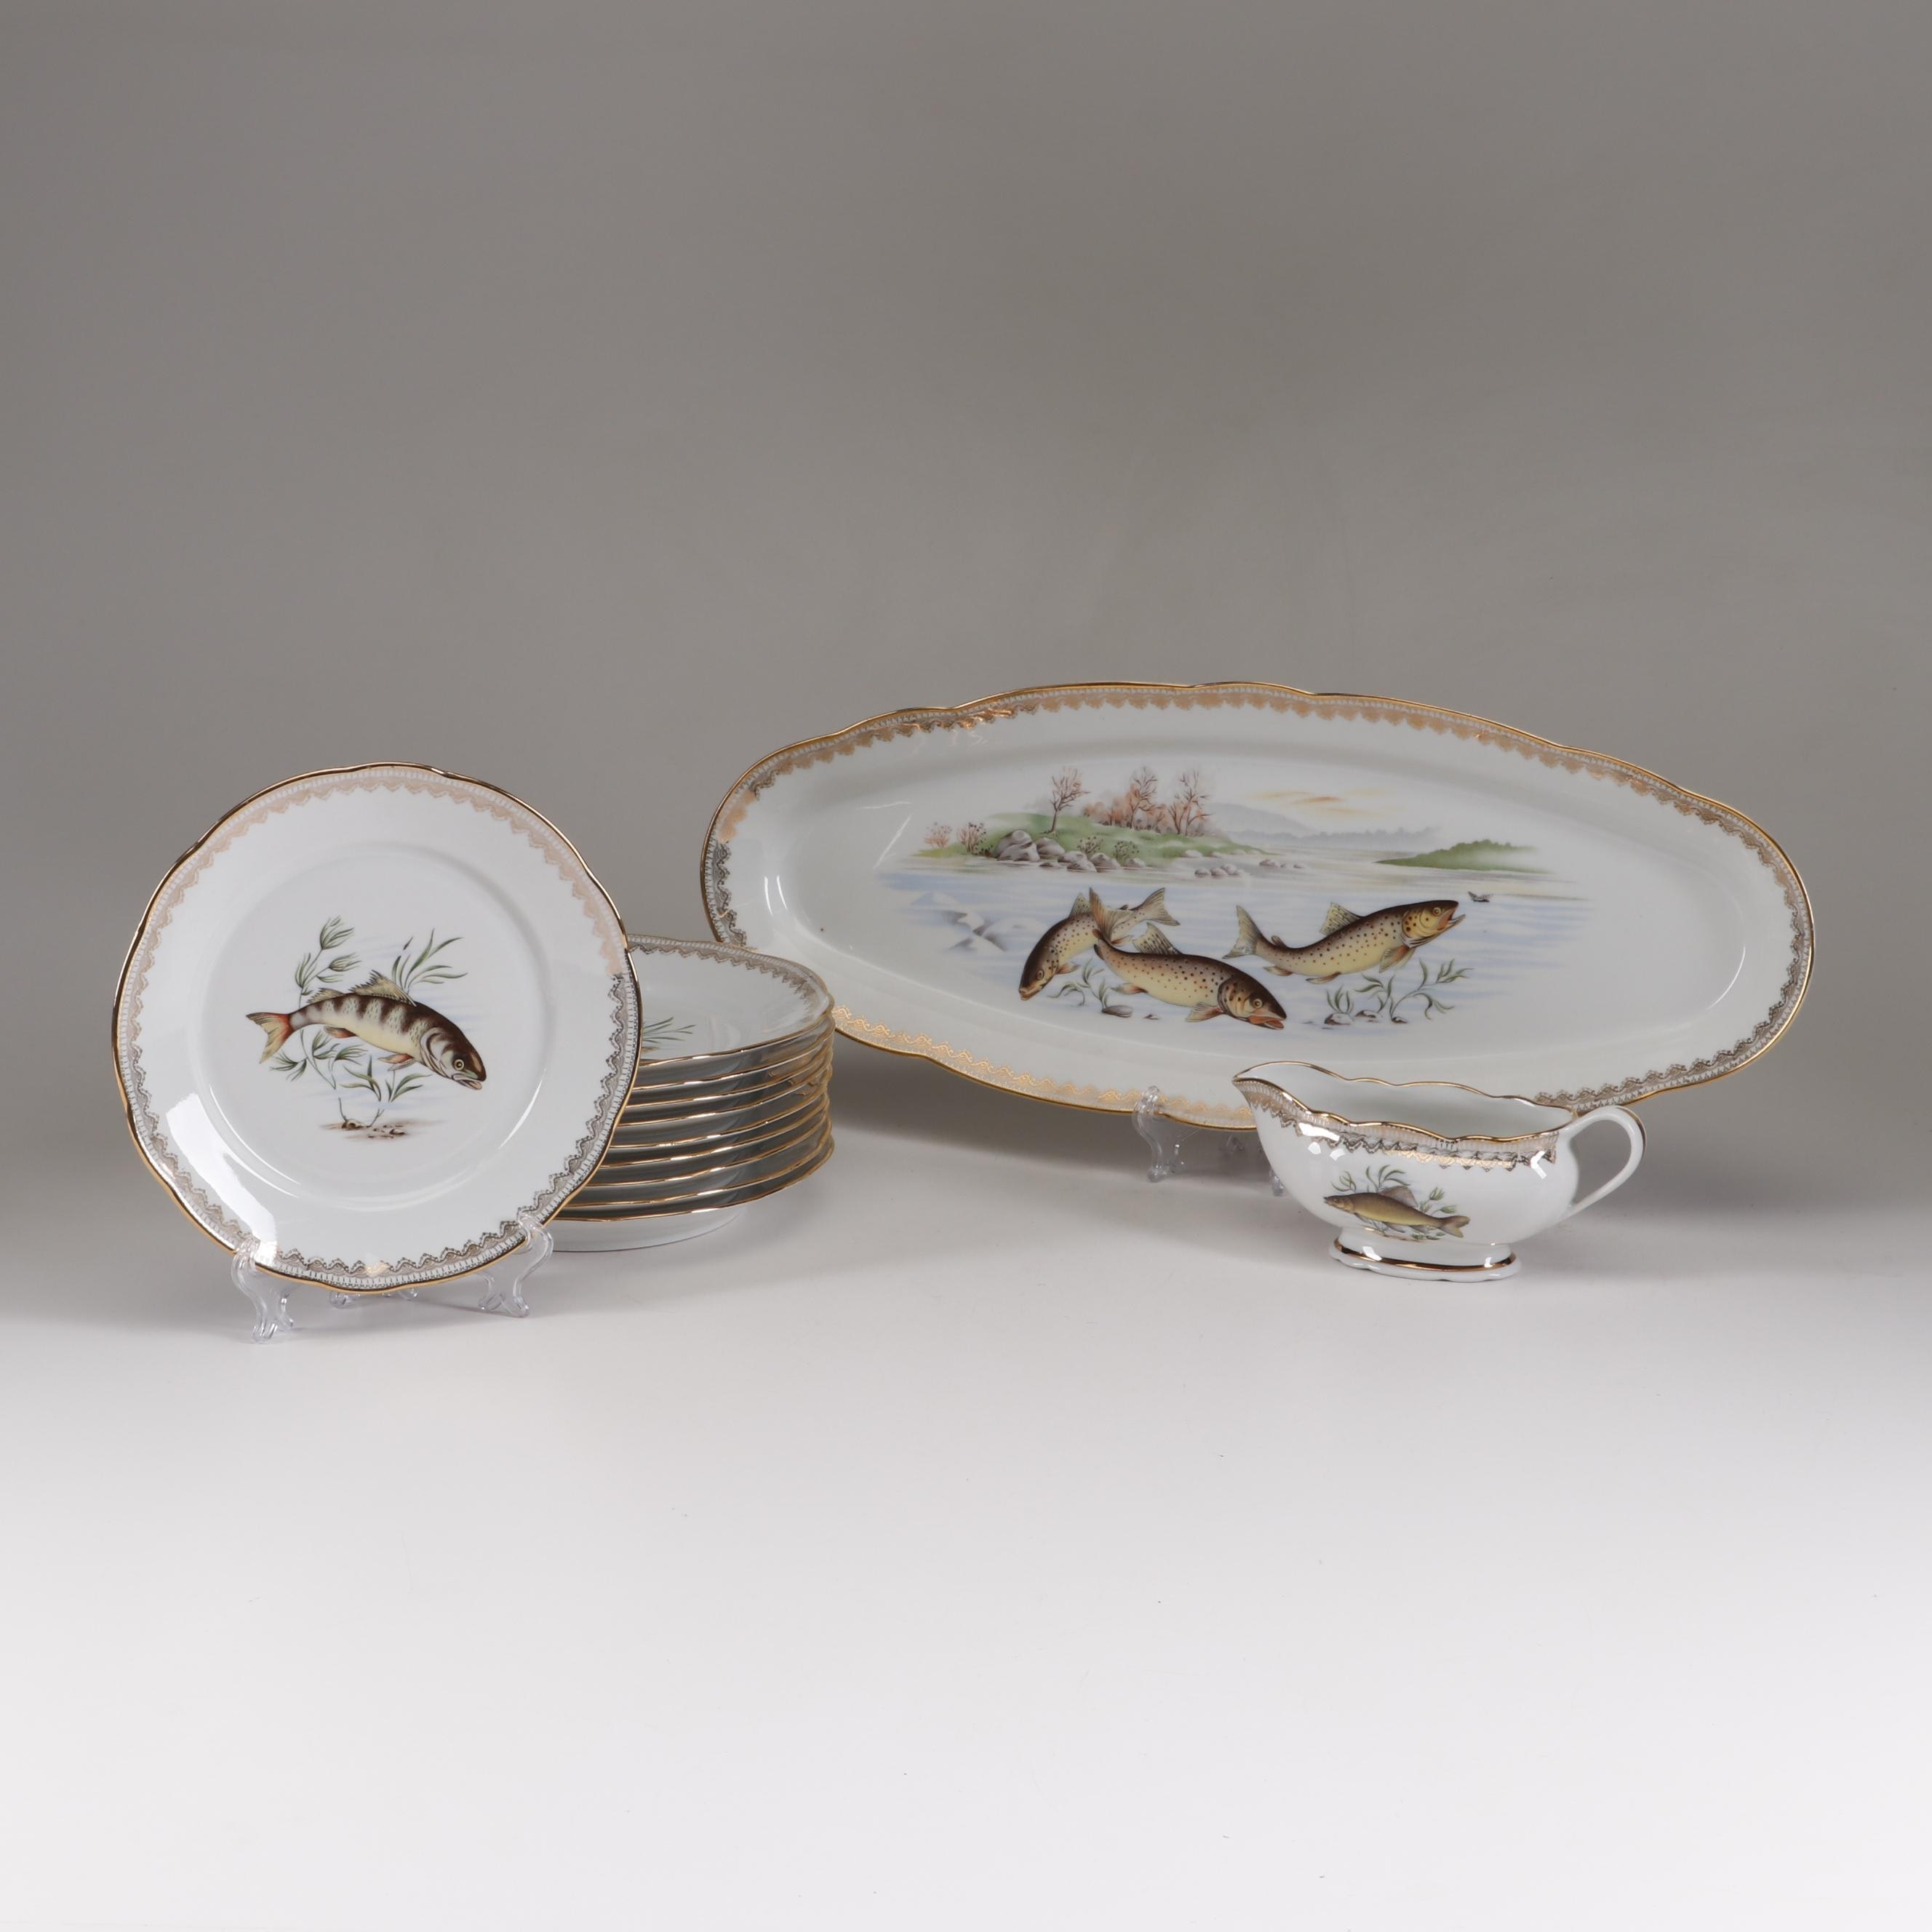 F. D. Chauvigny Porcelain Fish Plates and Serveware